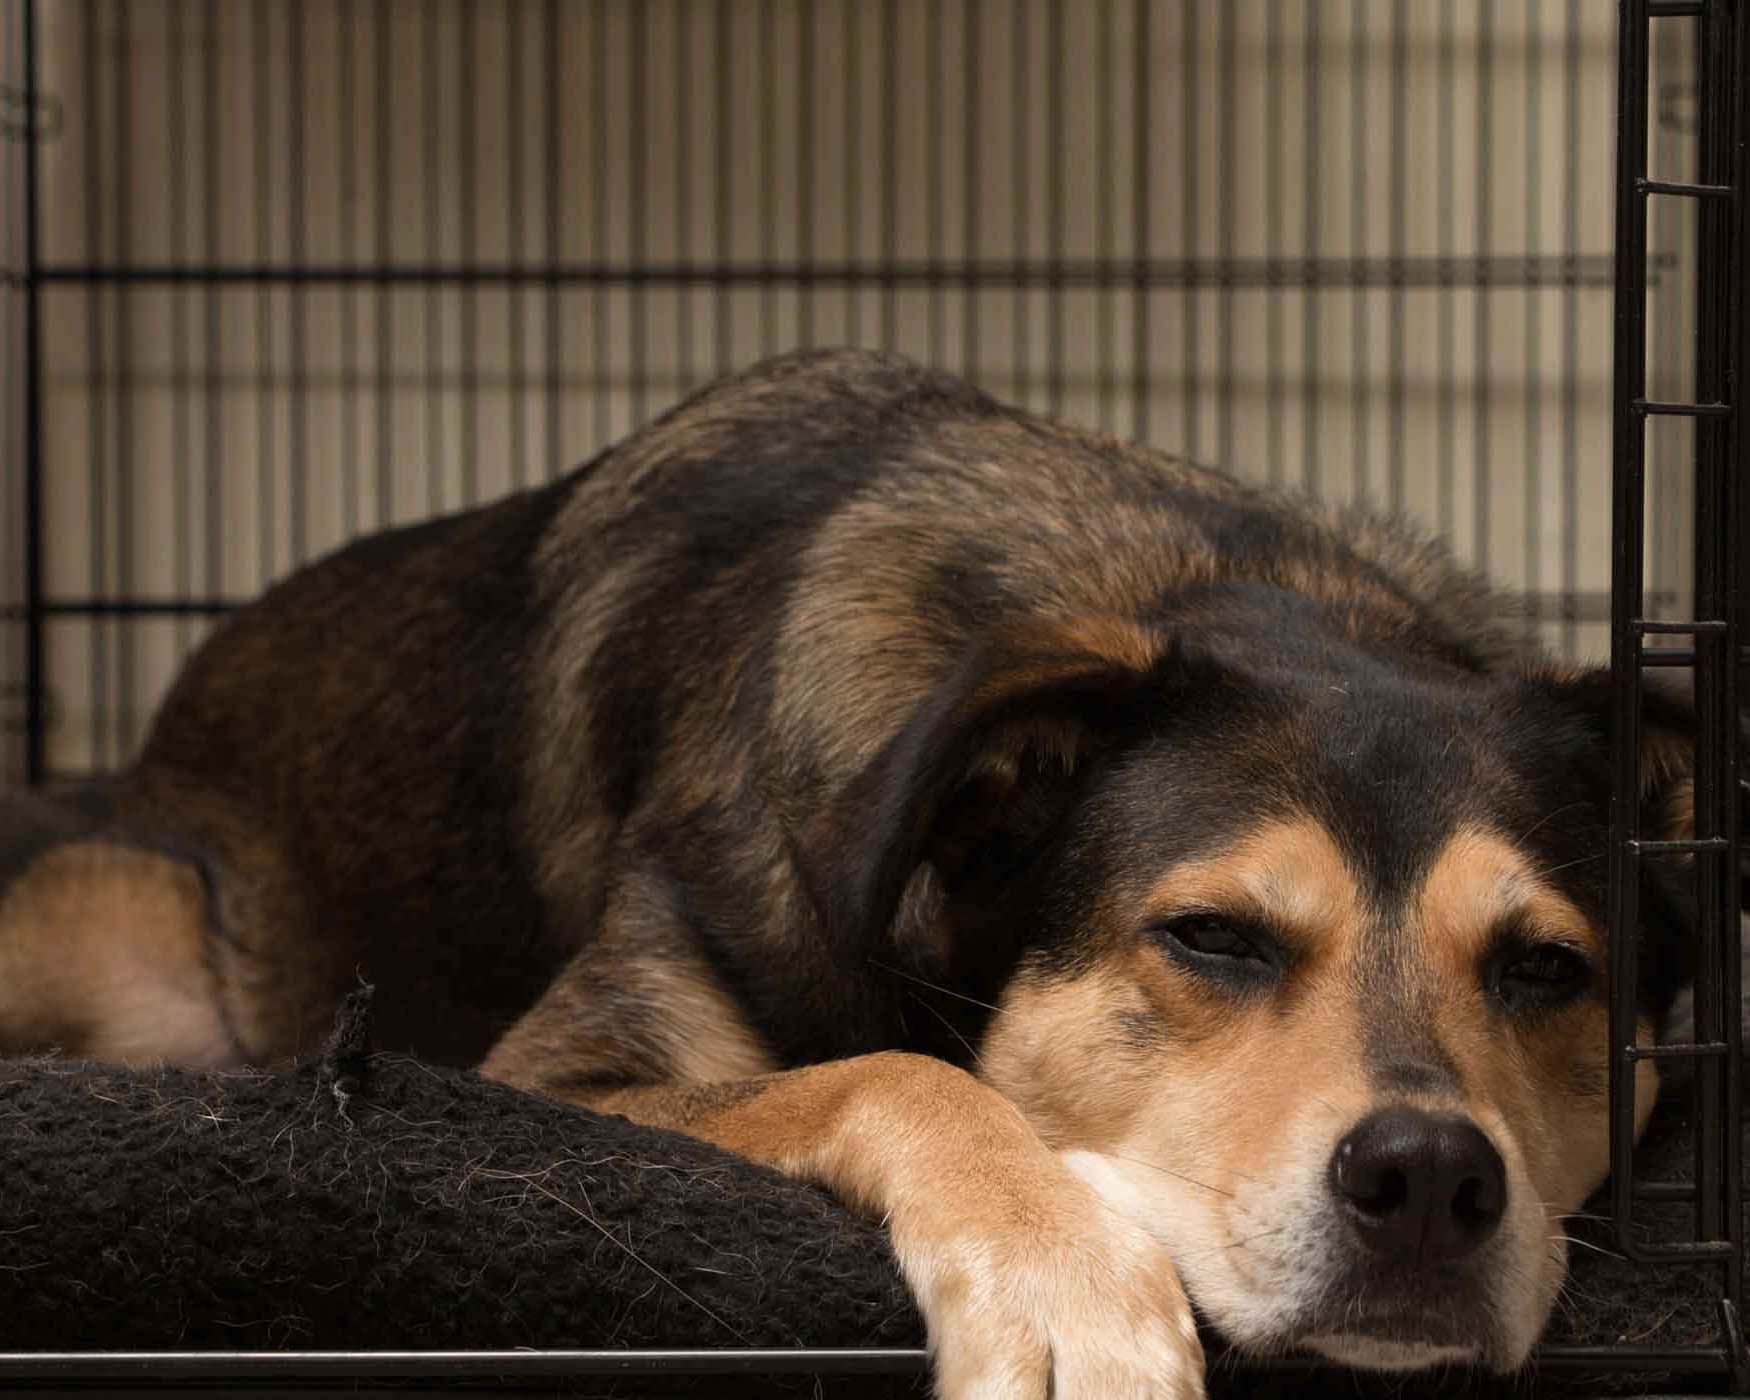 I Like Sleeping In My Crate At Night It Is My Safe Place It Is Common For Dogs To Like To Have German Shepherd Puppies Training Cattle Dog Puppy Dog Training